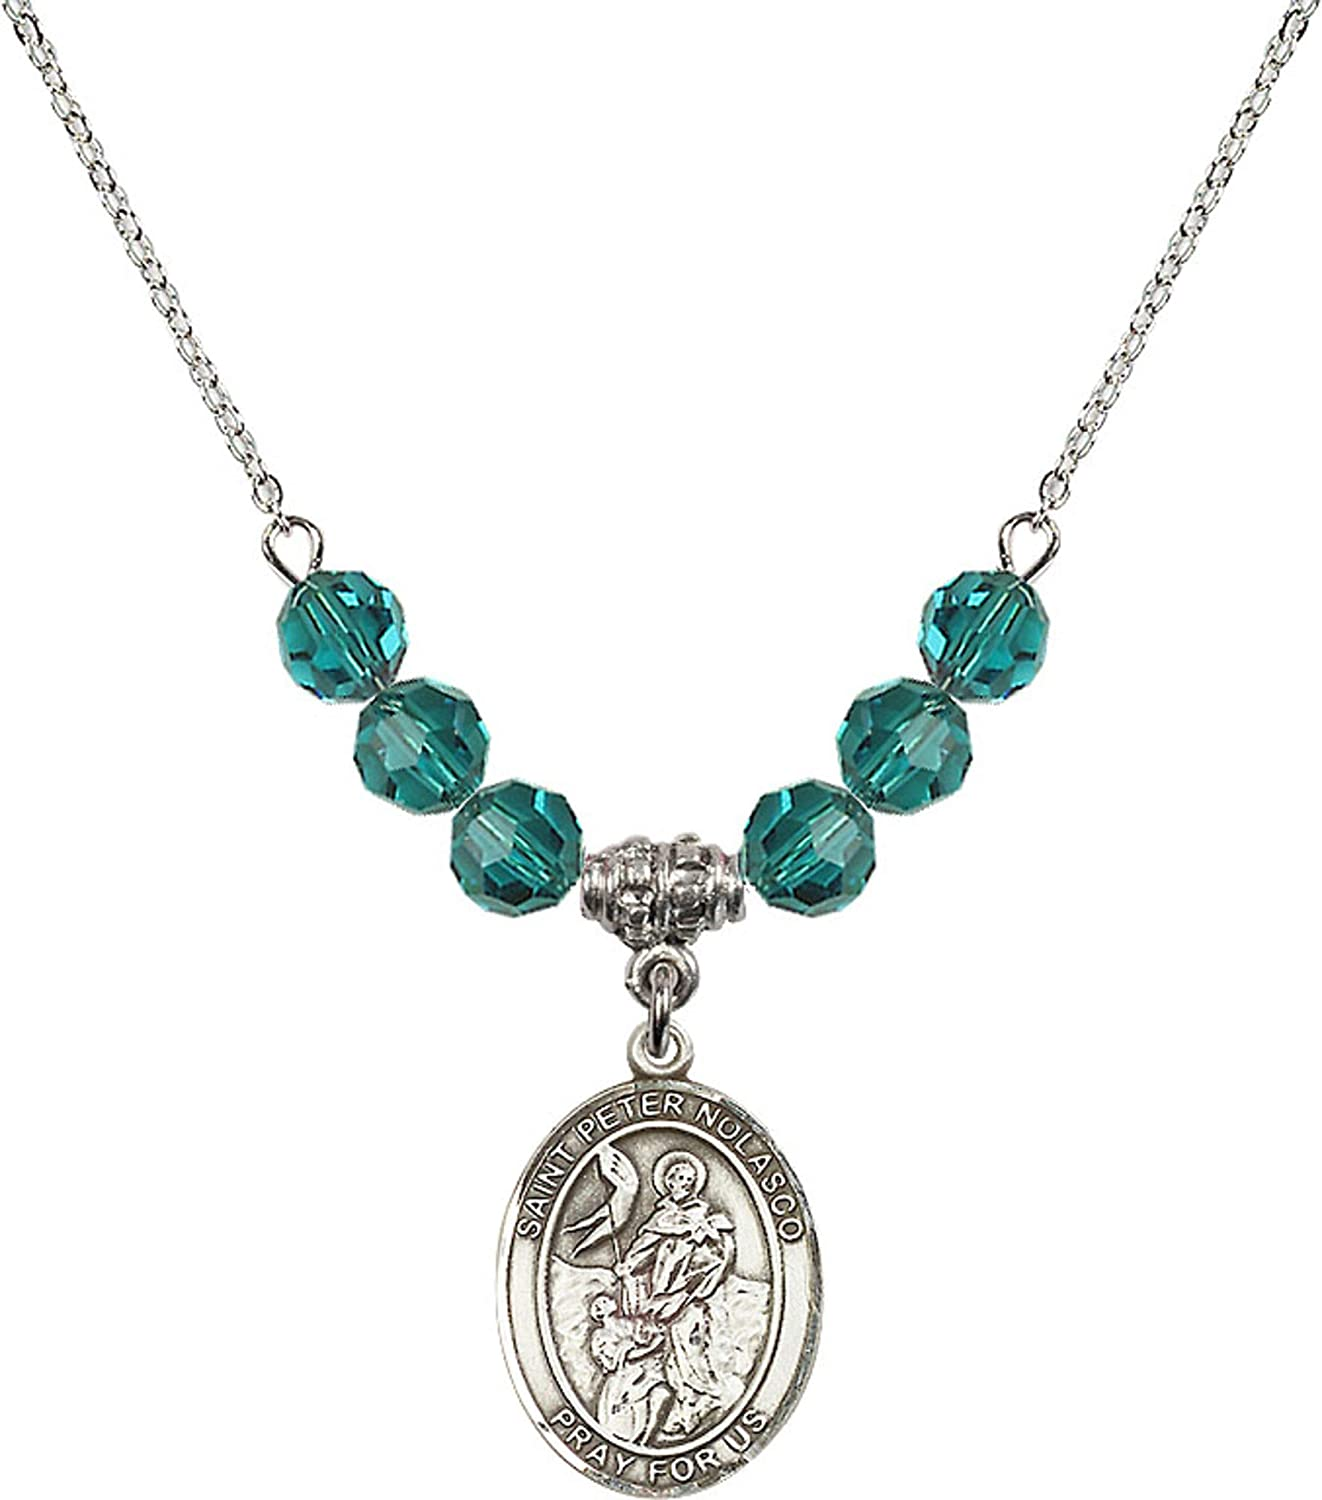 Bonyak Jewelry 18 Inch Rhodium Plated Necklace w// 6mm Blue December Birth Month Stone Beads and Saint Peter Nolasco Charm